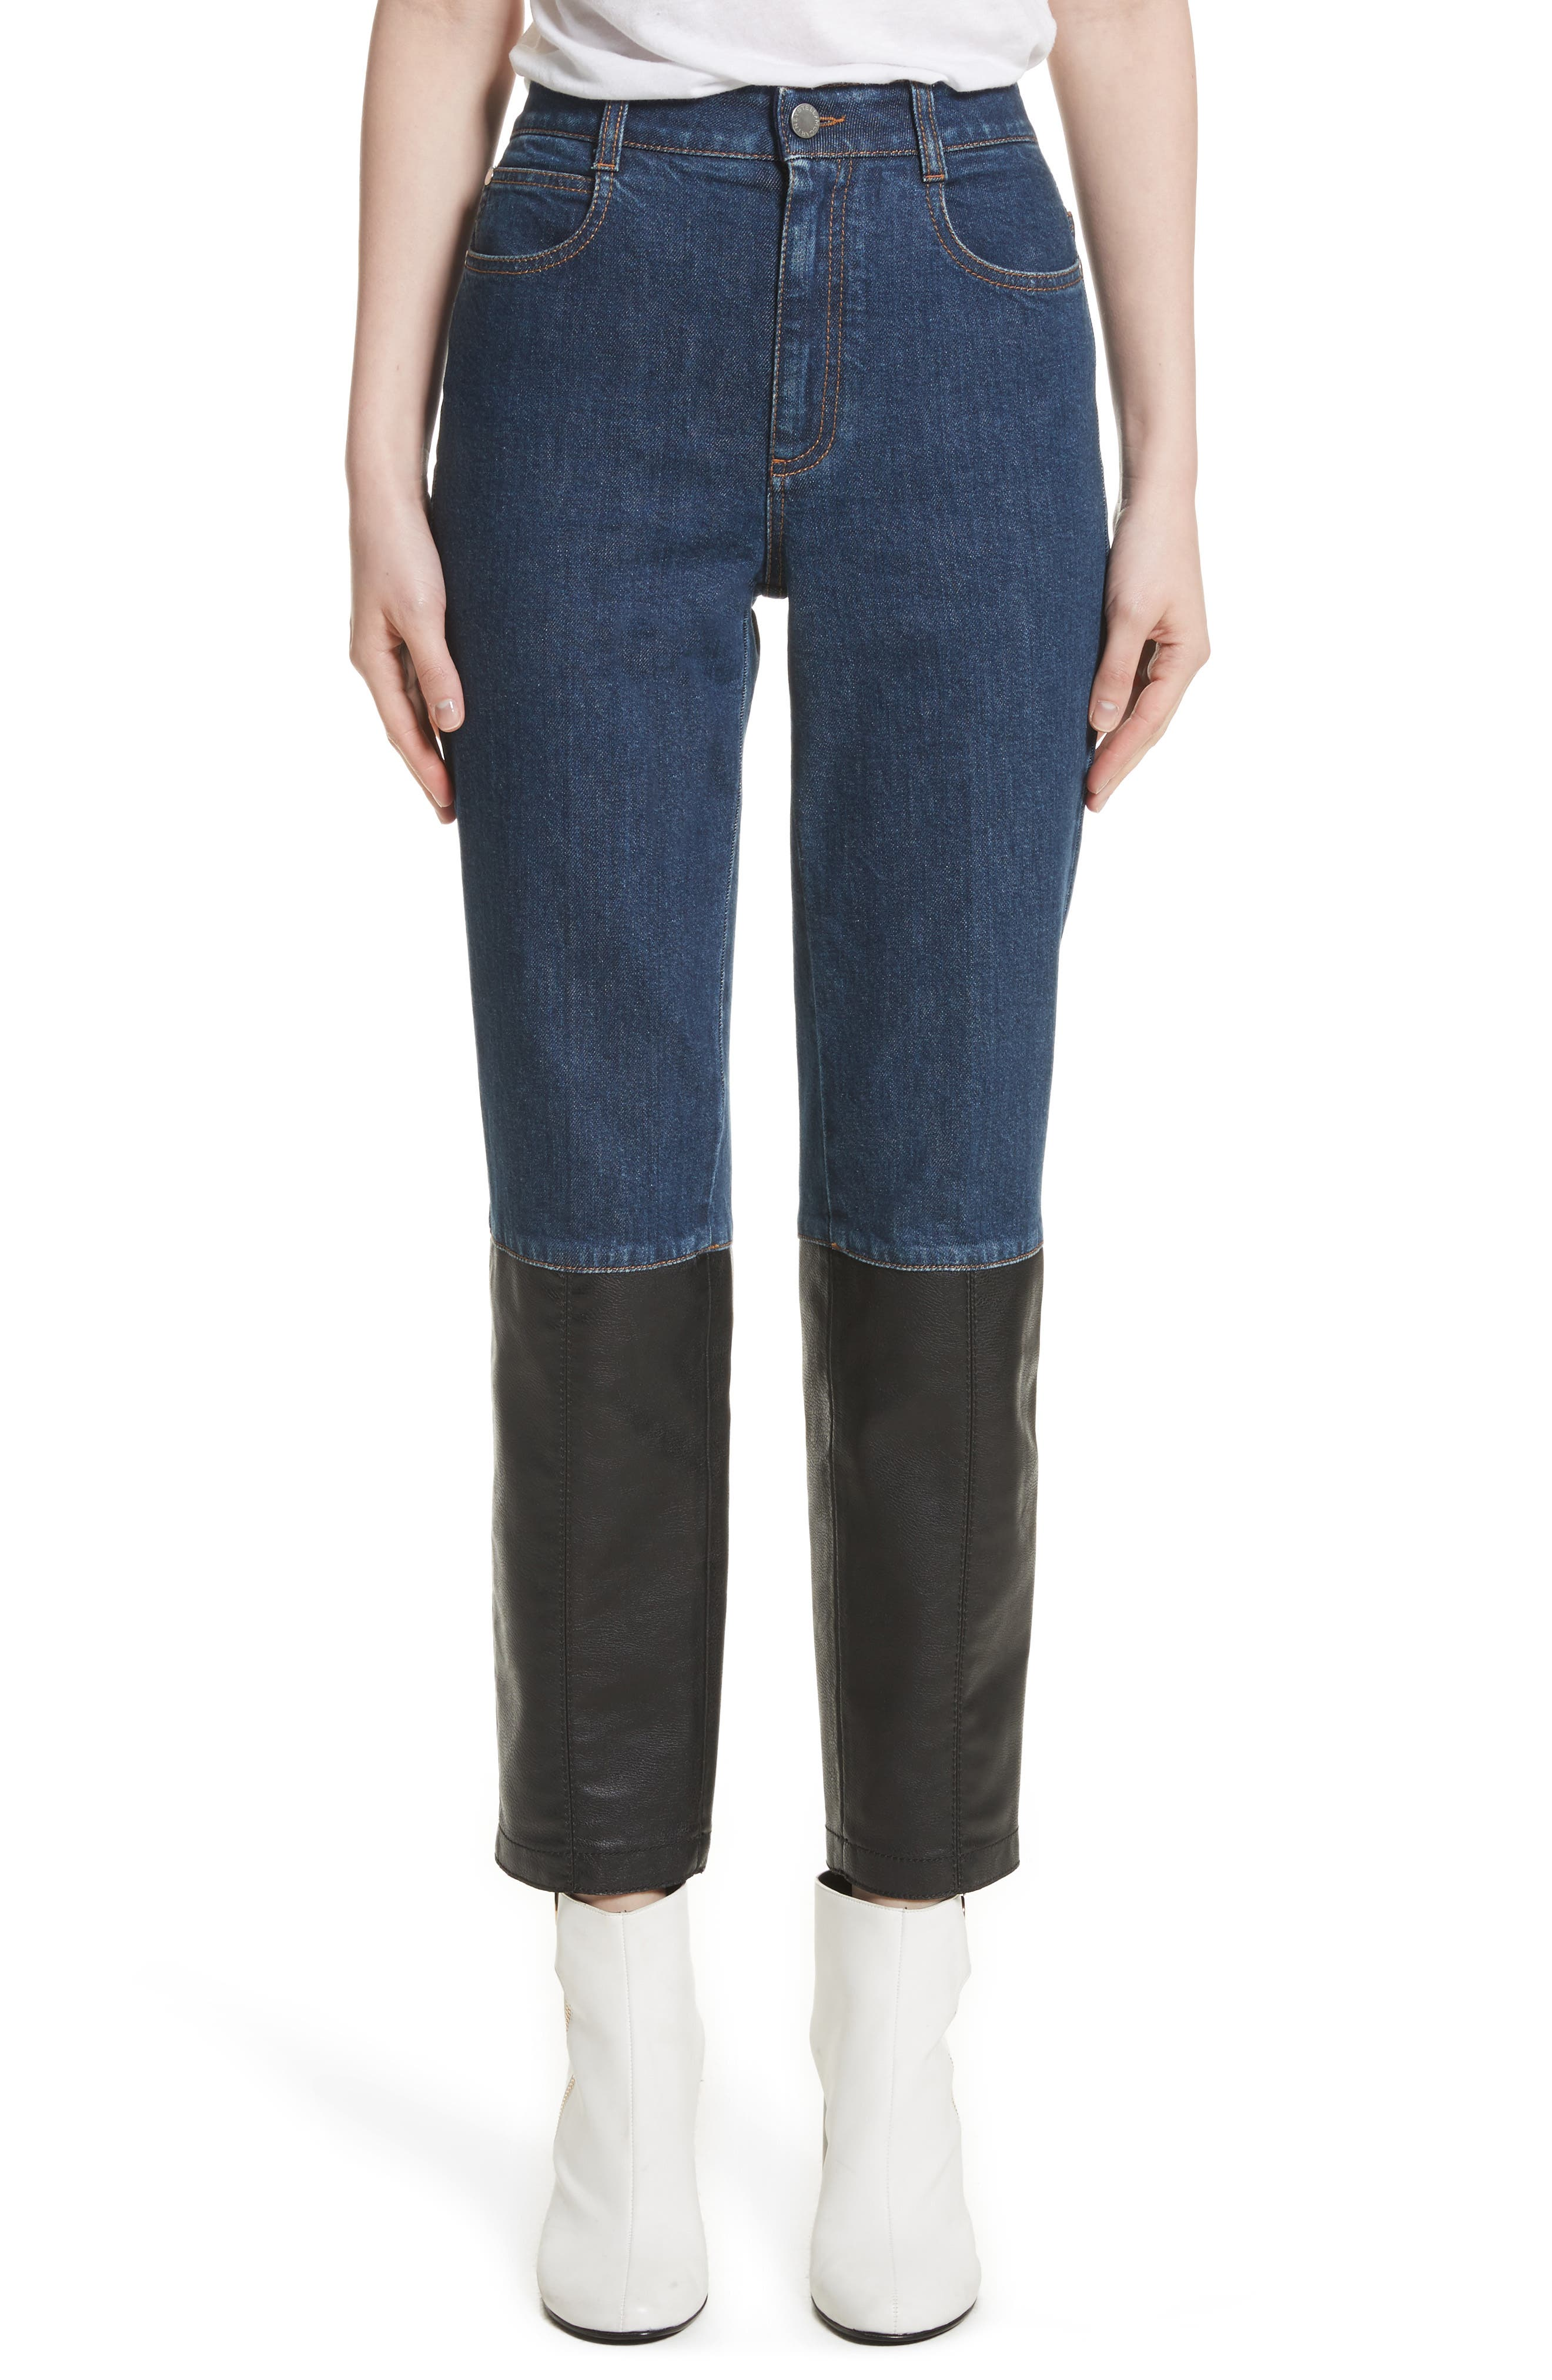 Alter Leather Trim High Waist Straight Leg Jeans,                             Main thumbnail 1, color,                             400